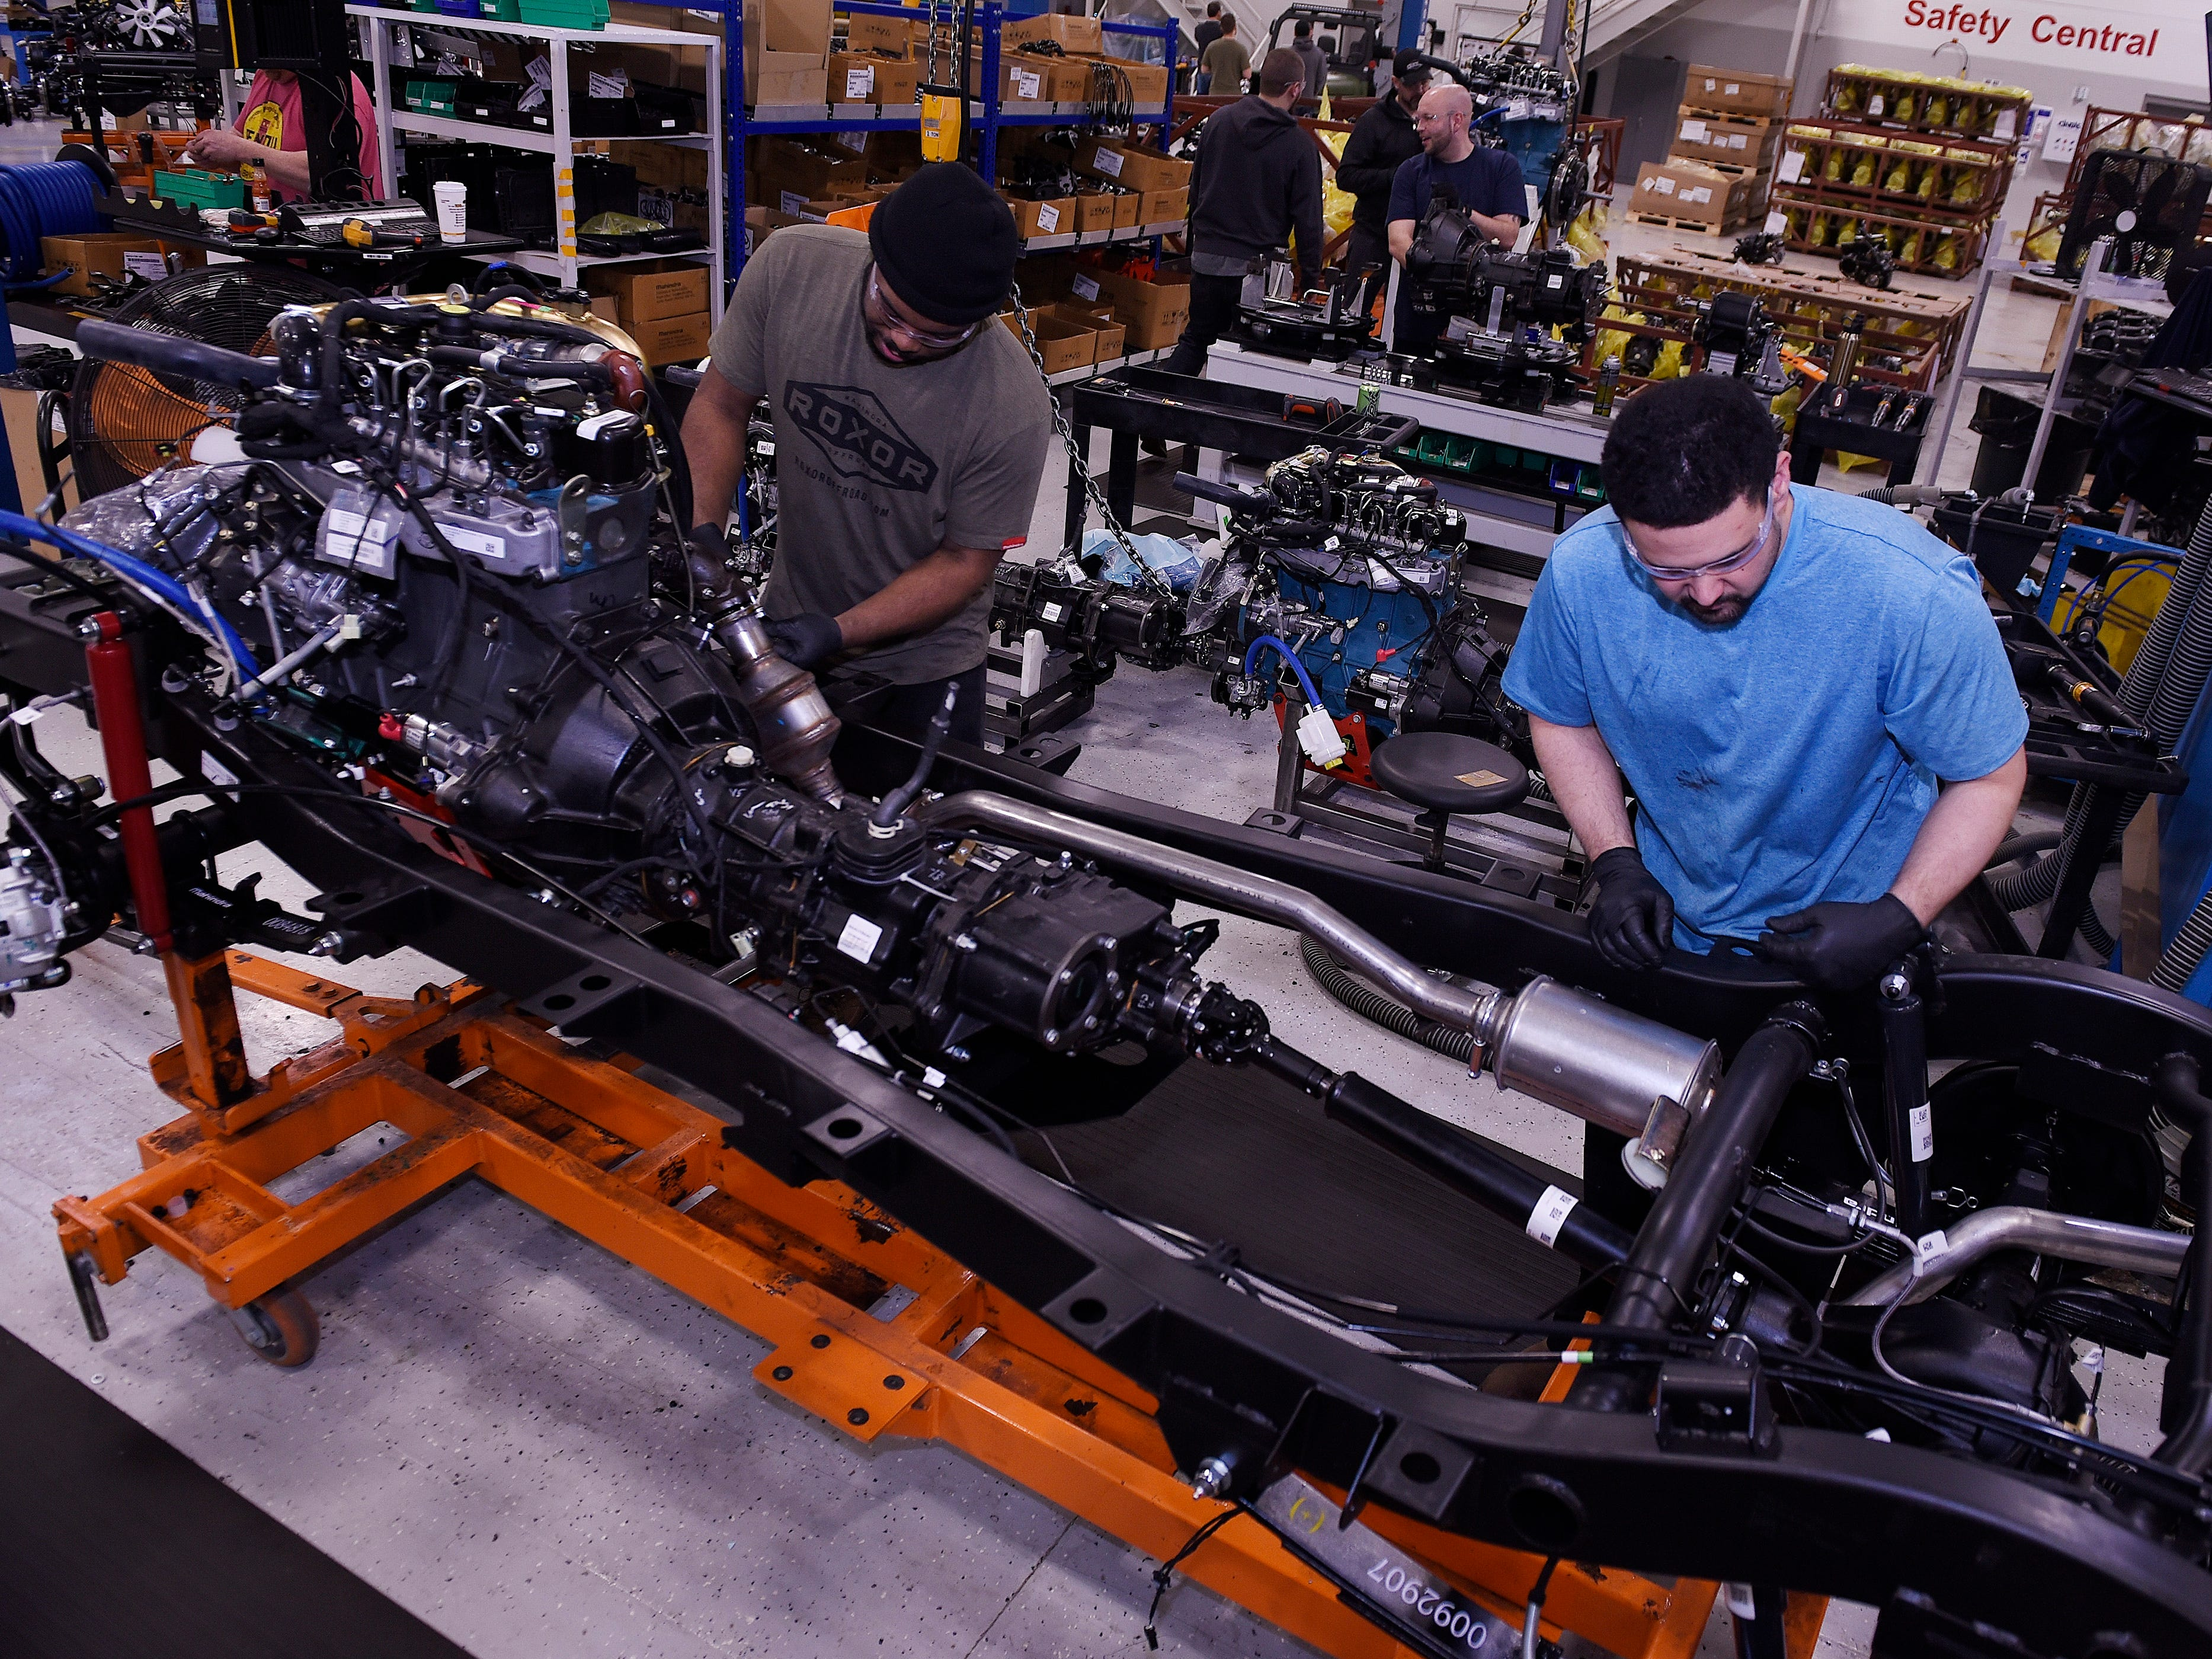 Terron Calmese, left, 38, and Doug Cortez, 32, install an engine in the chassis of an automobile at the Mahindra automotive plant in Auburn Hills, March 4, 2019.